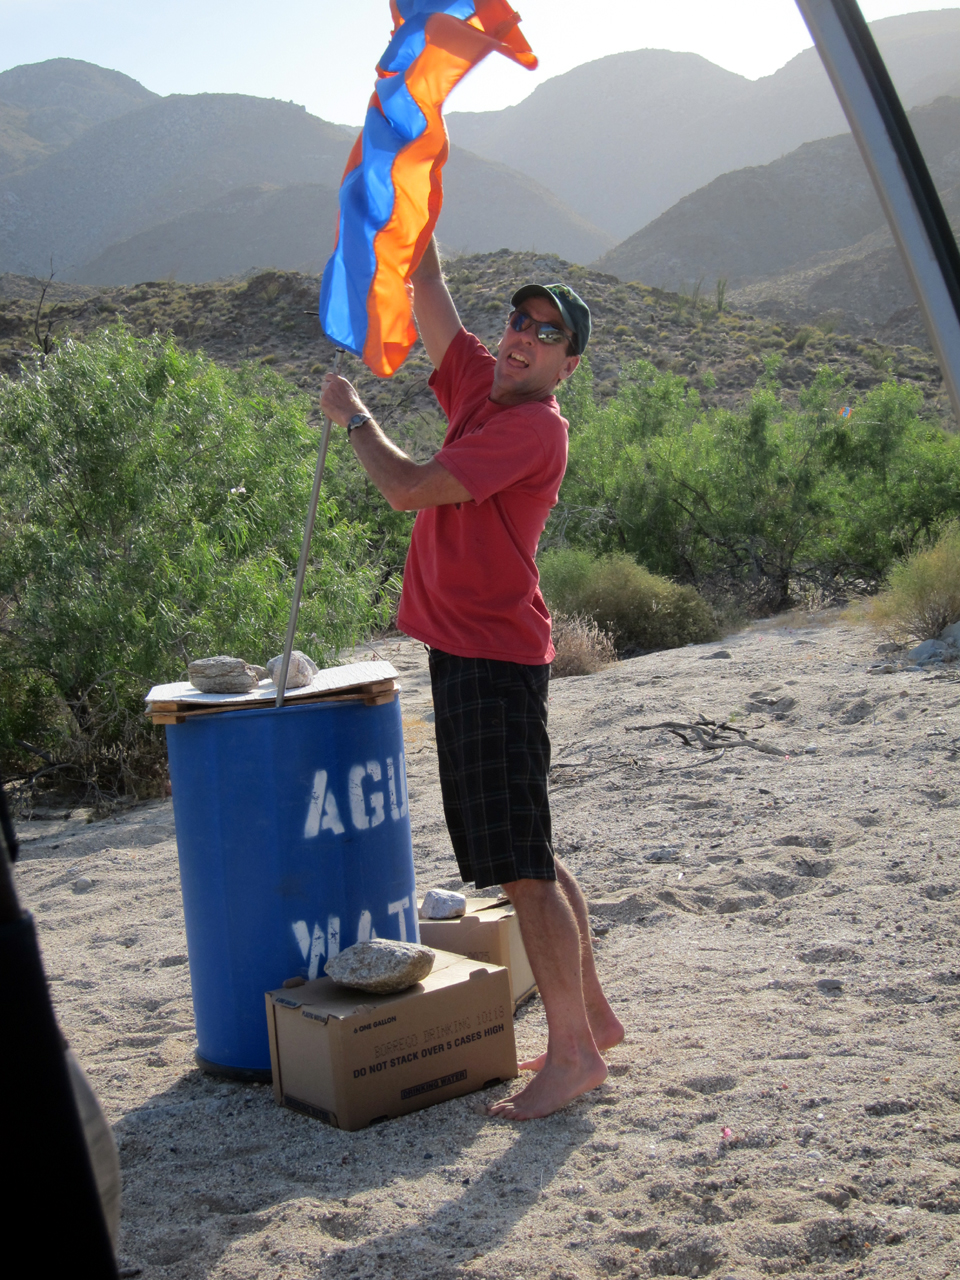 Fixing the water drop flag